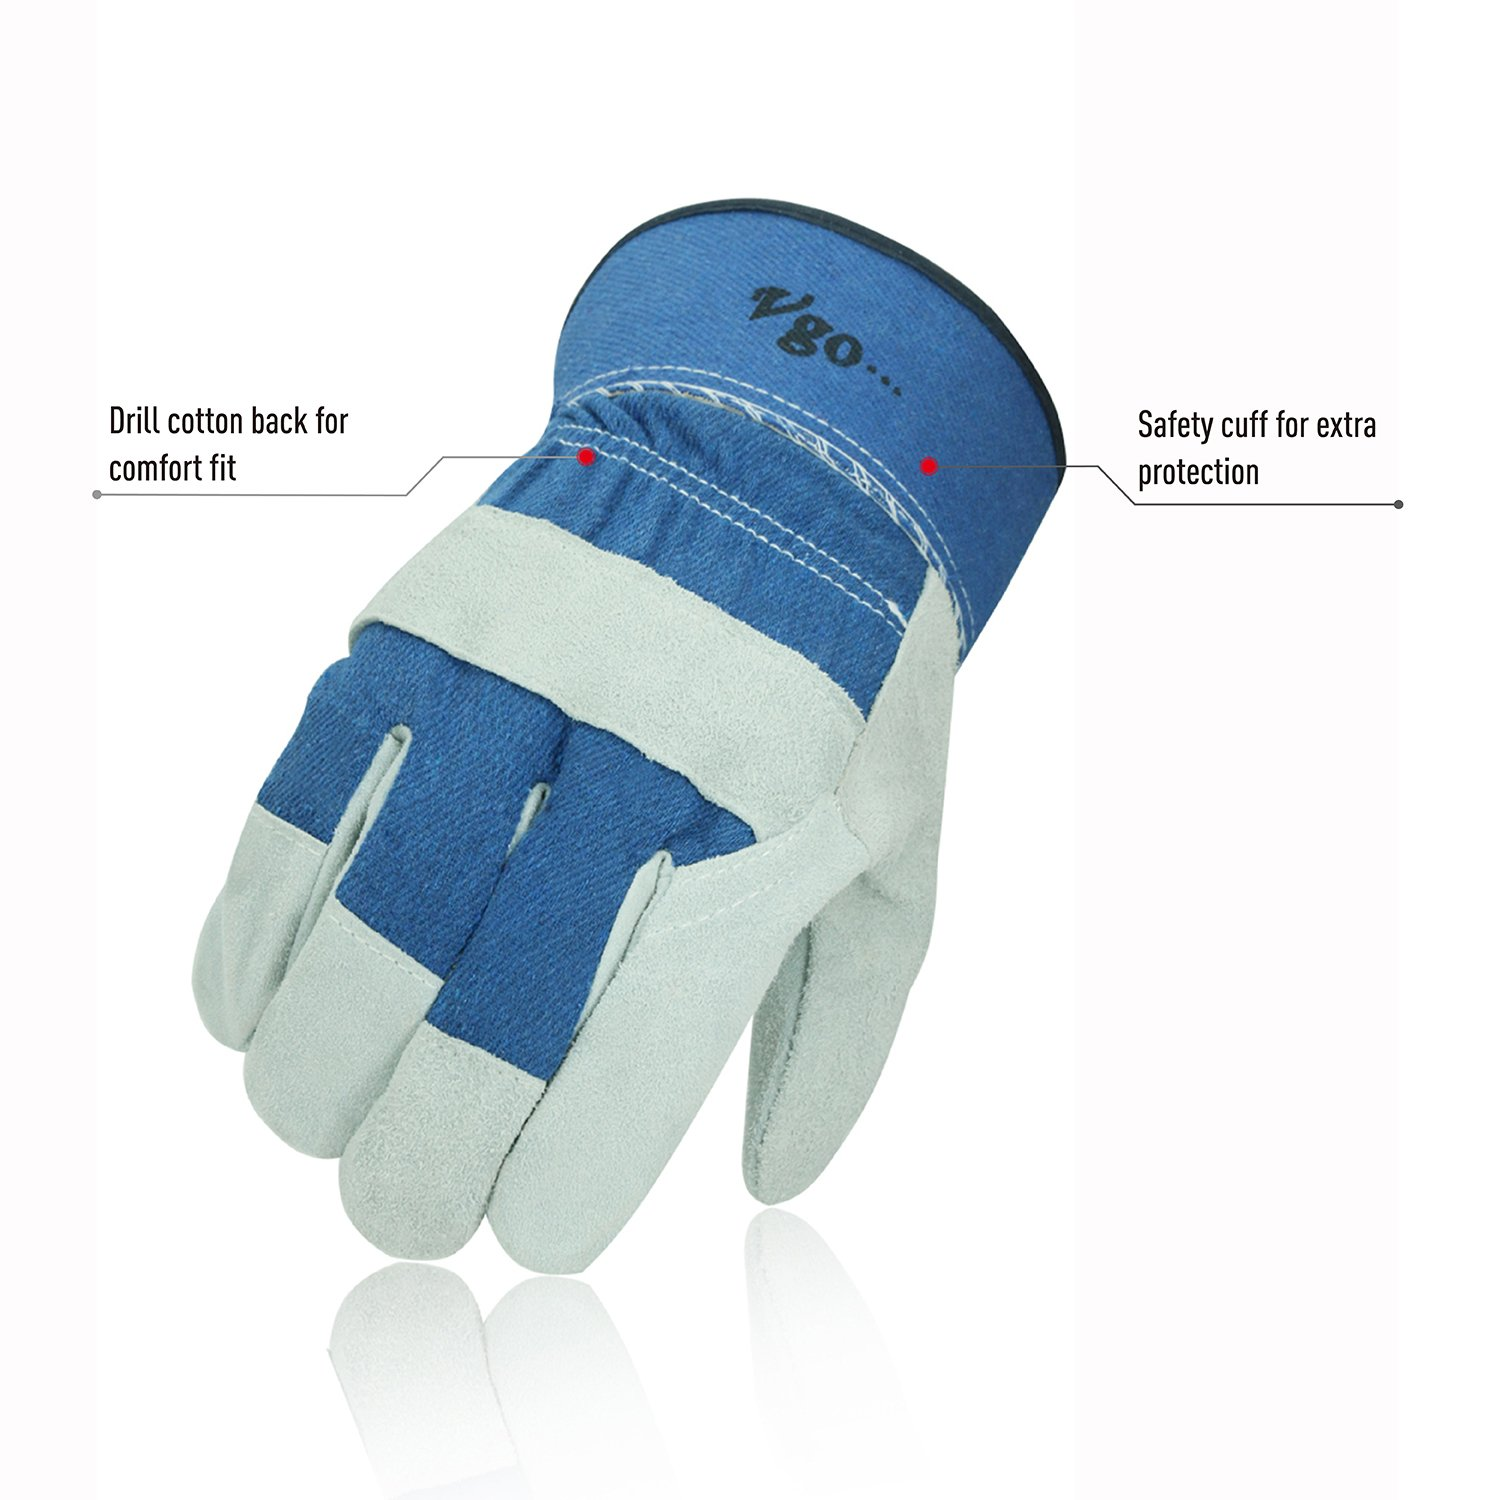 Vgo 3 Pairs 0 ℃ //32 ℉ or Above Winter Cowhide Split Leather Work and Driver Gloves Size L, Blue, CB3501F for Heavy Duty//Truck Driving//Warehouse//Gardening//Farm Working Gloves